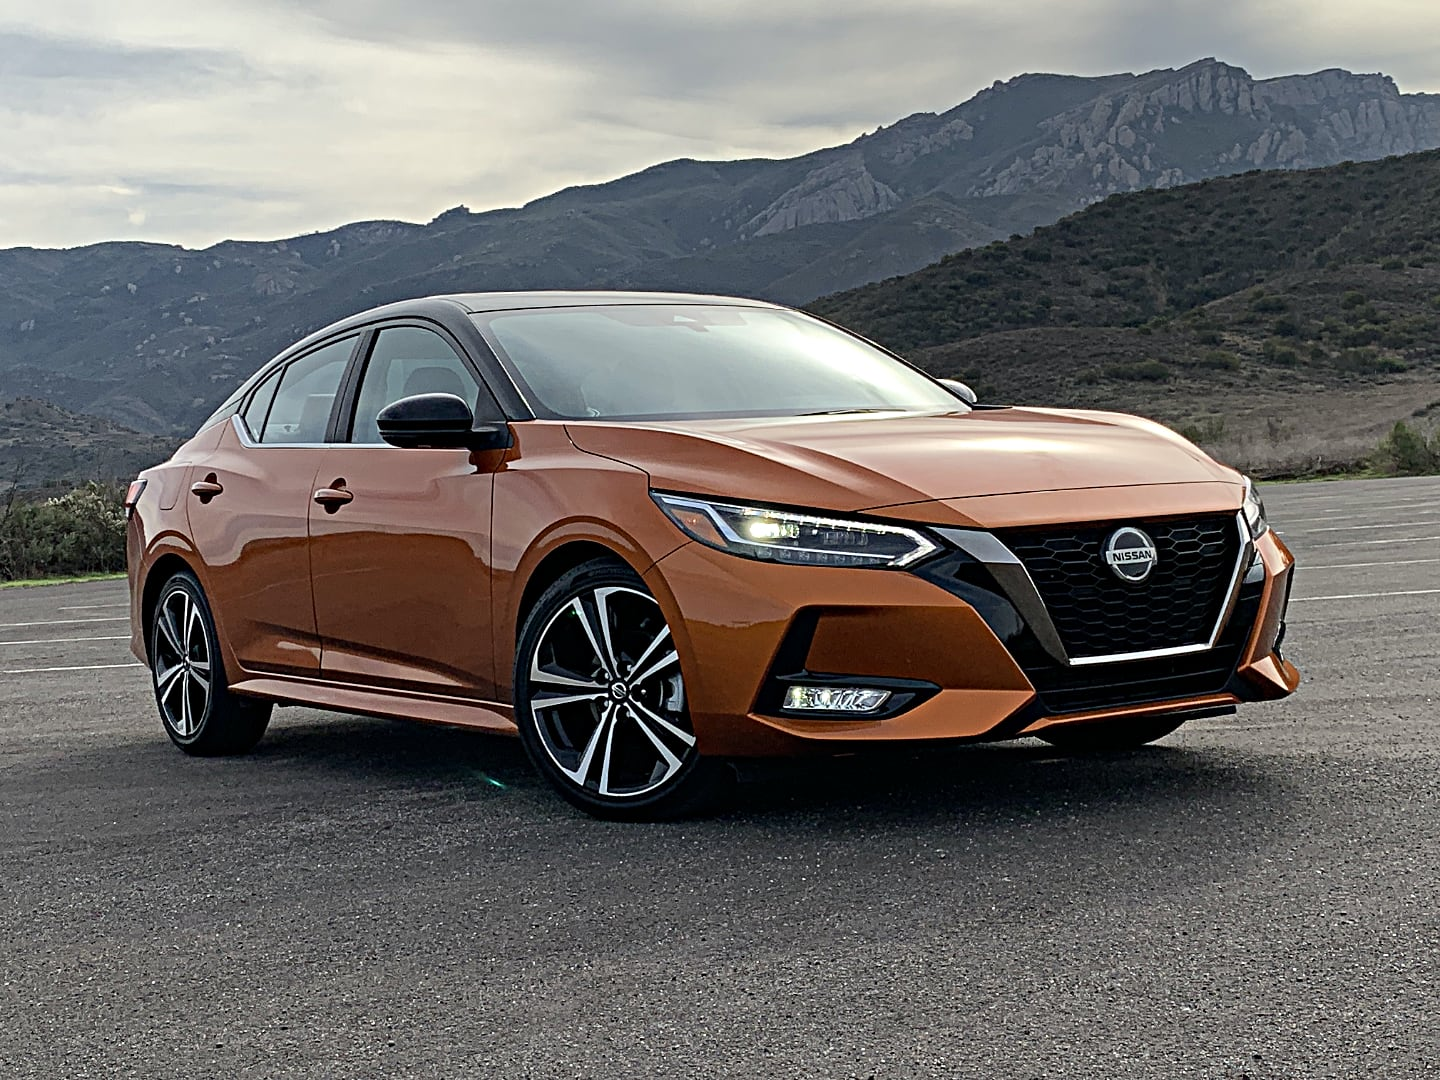 2020 Nissan Sentra Is Perfect For Recent College Grads ...